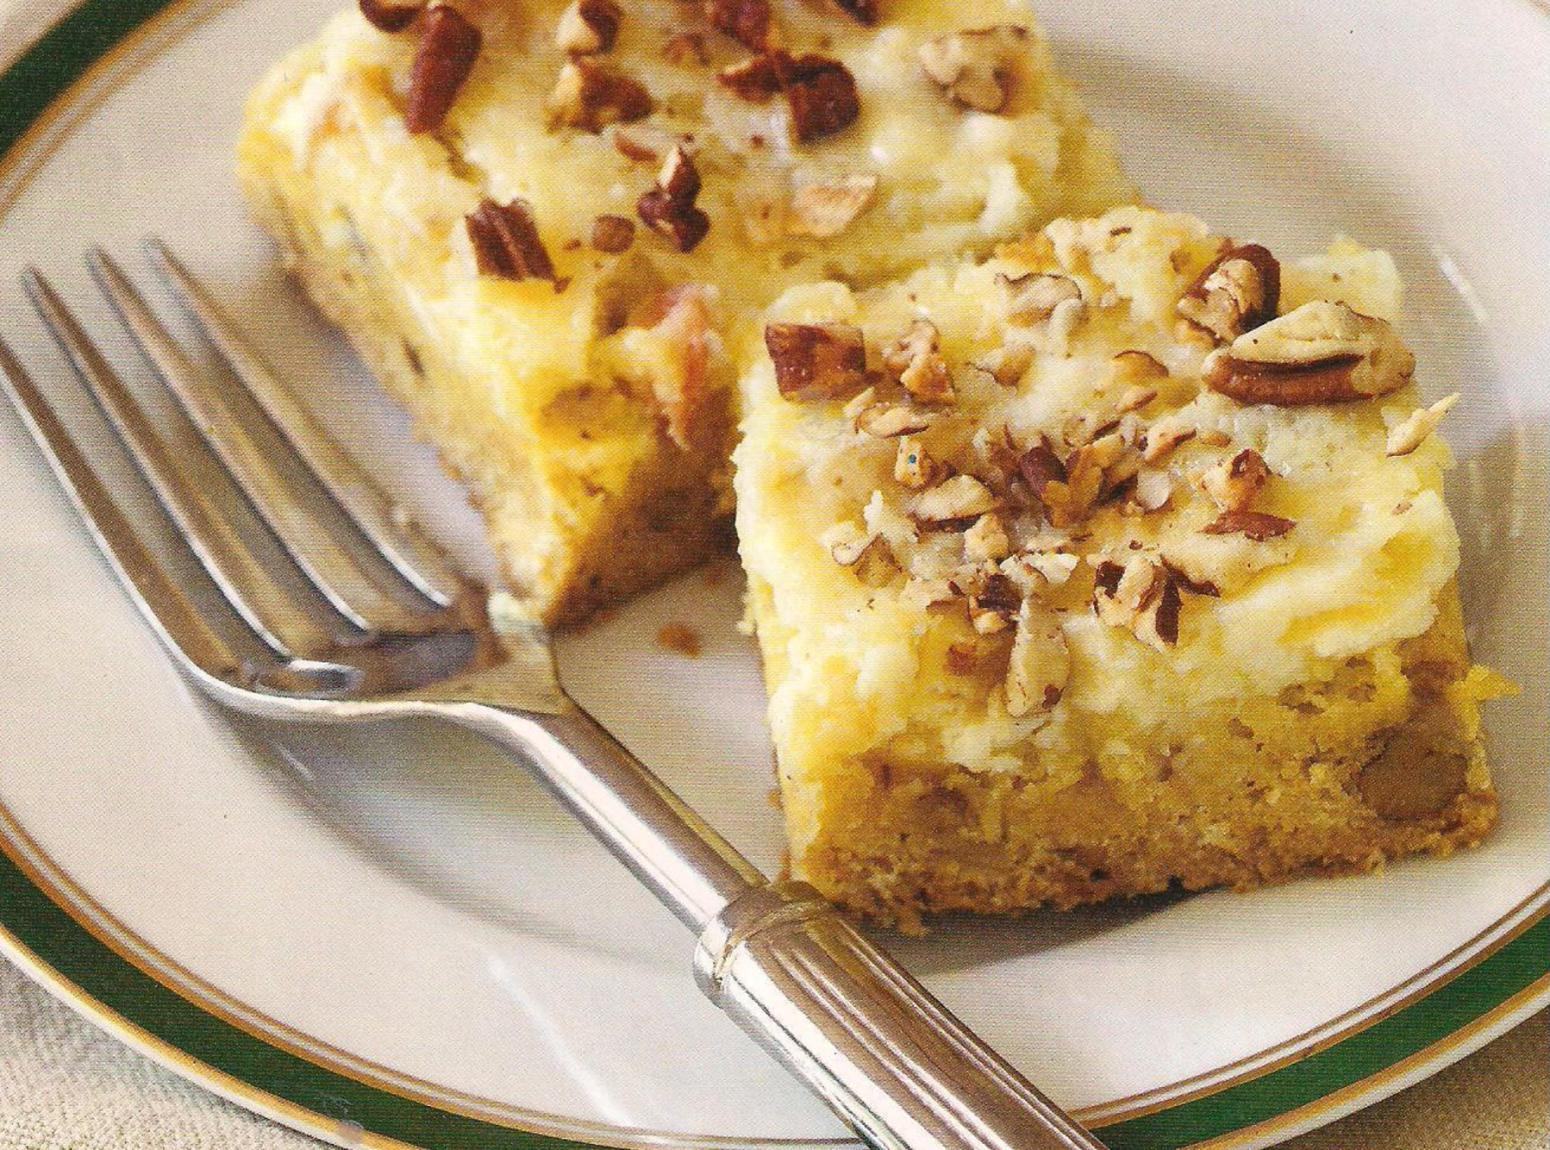 Apple pecan cream cheese bars Recipe